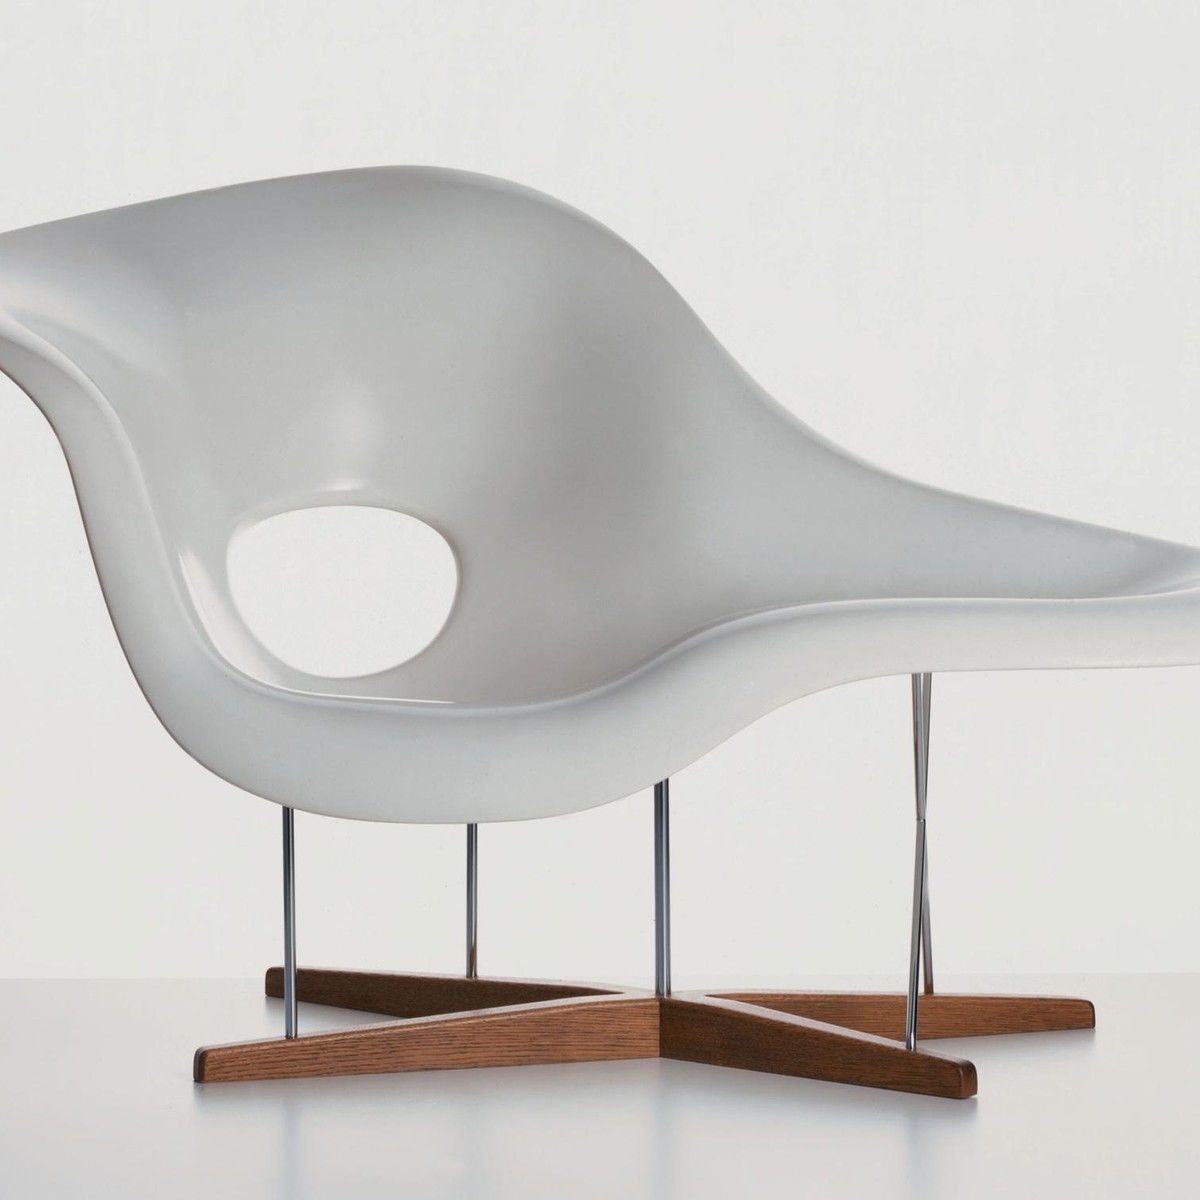 La chaise eames chaise longue vitra for Chaise dsw eames